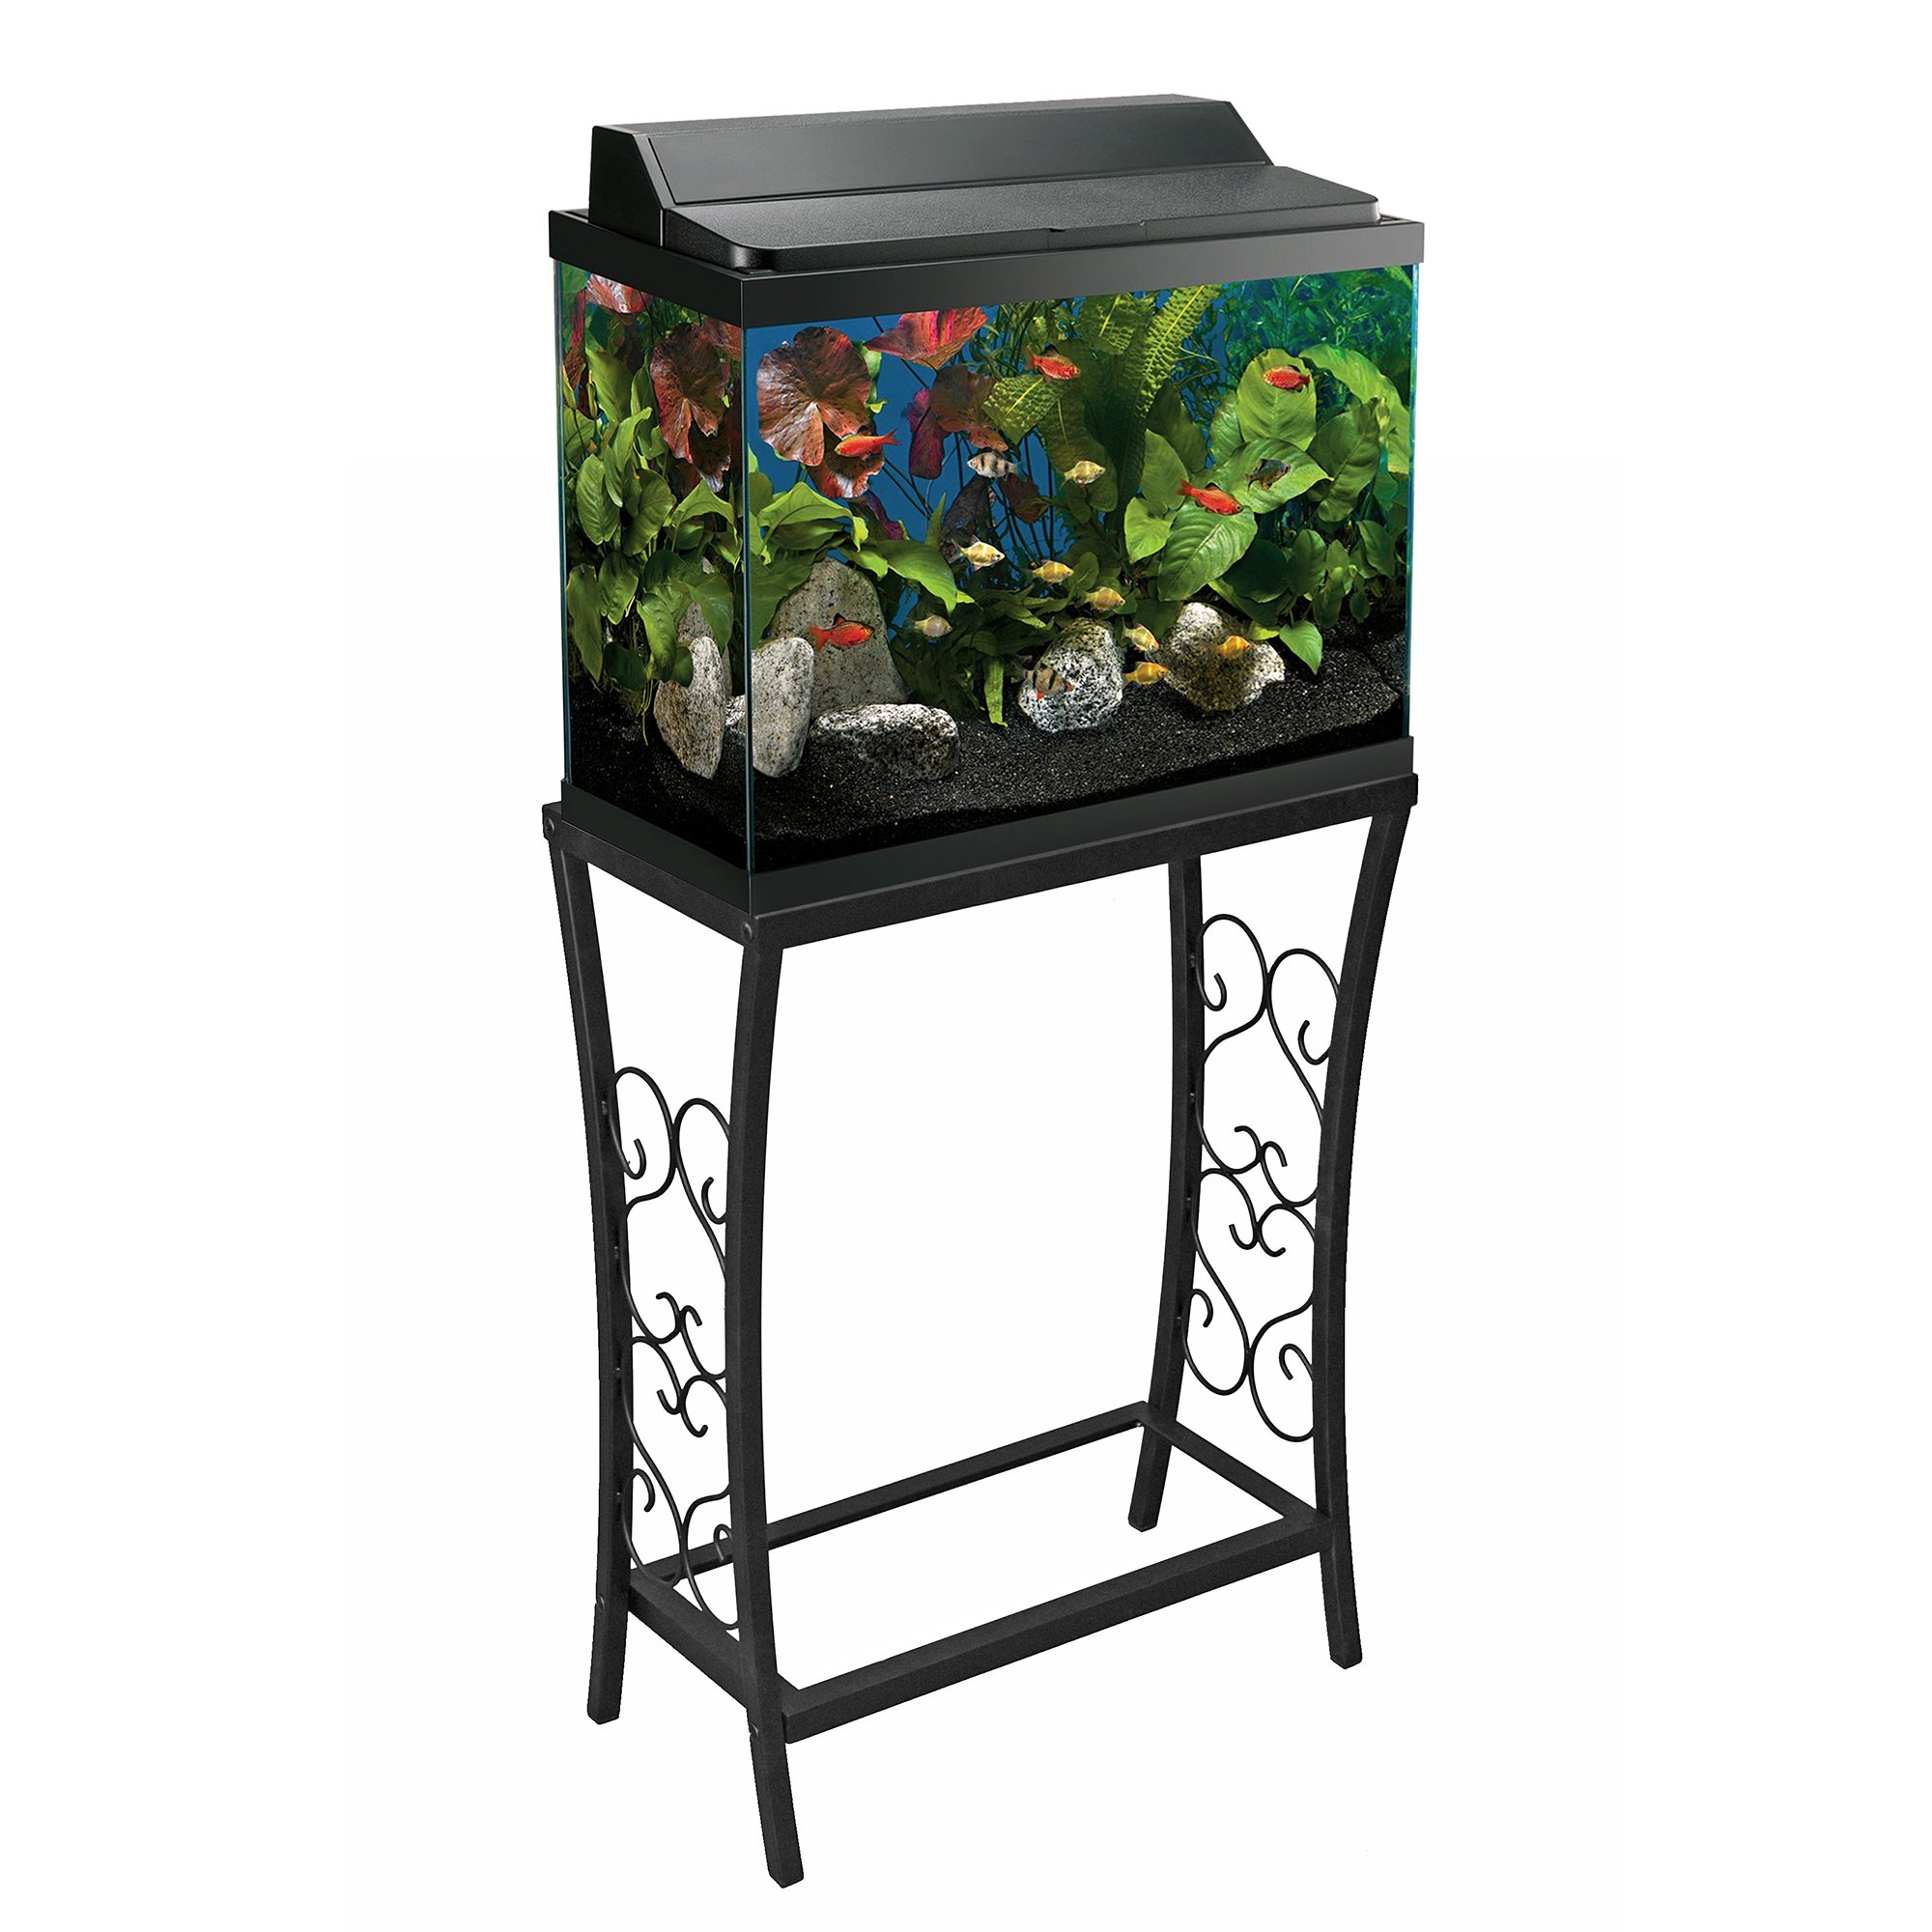 Fish tank heater 10 gallon - Aquatic Fundamentals Black Scroll Aquarium Stand 10 Gallons